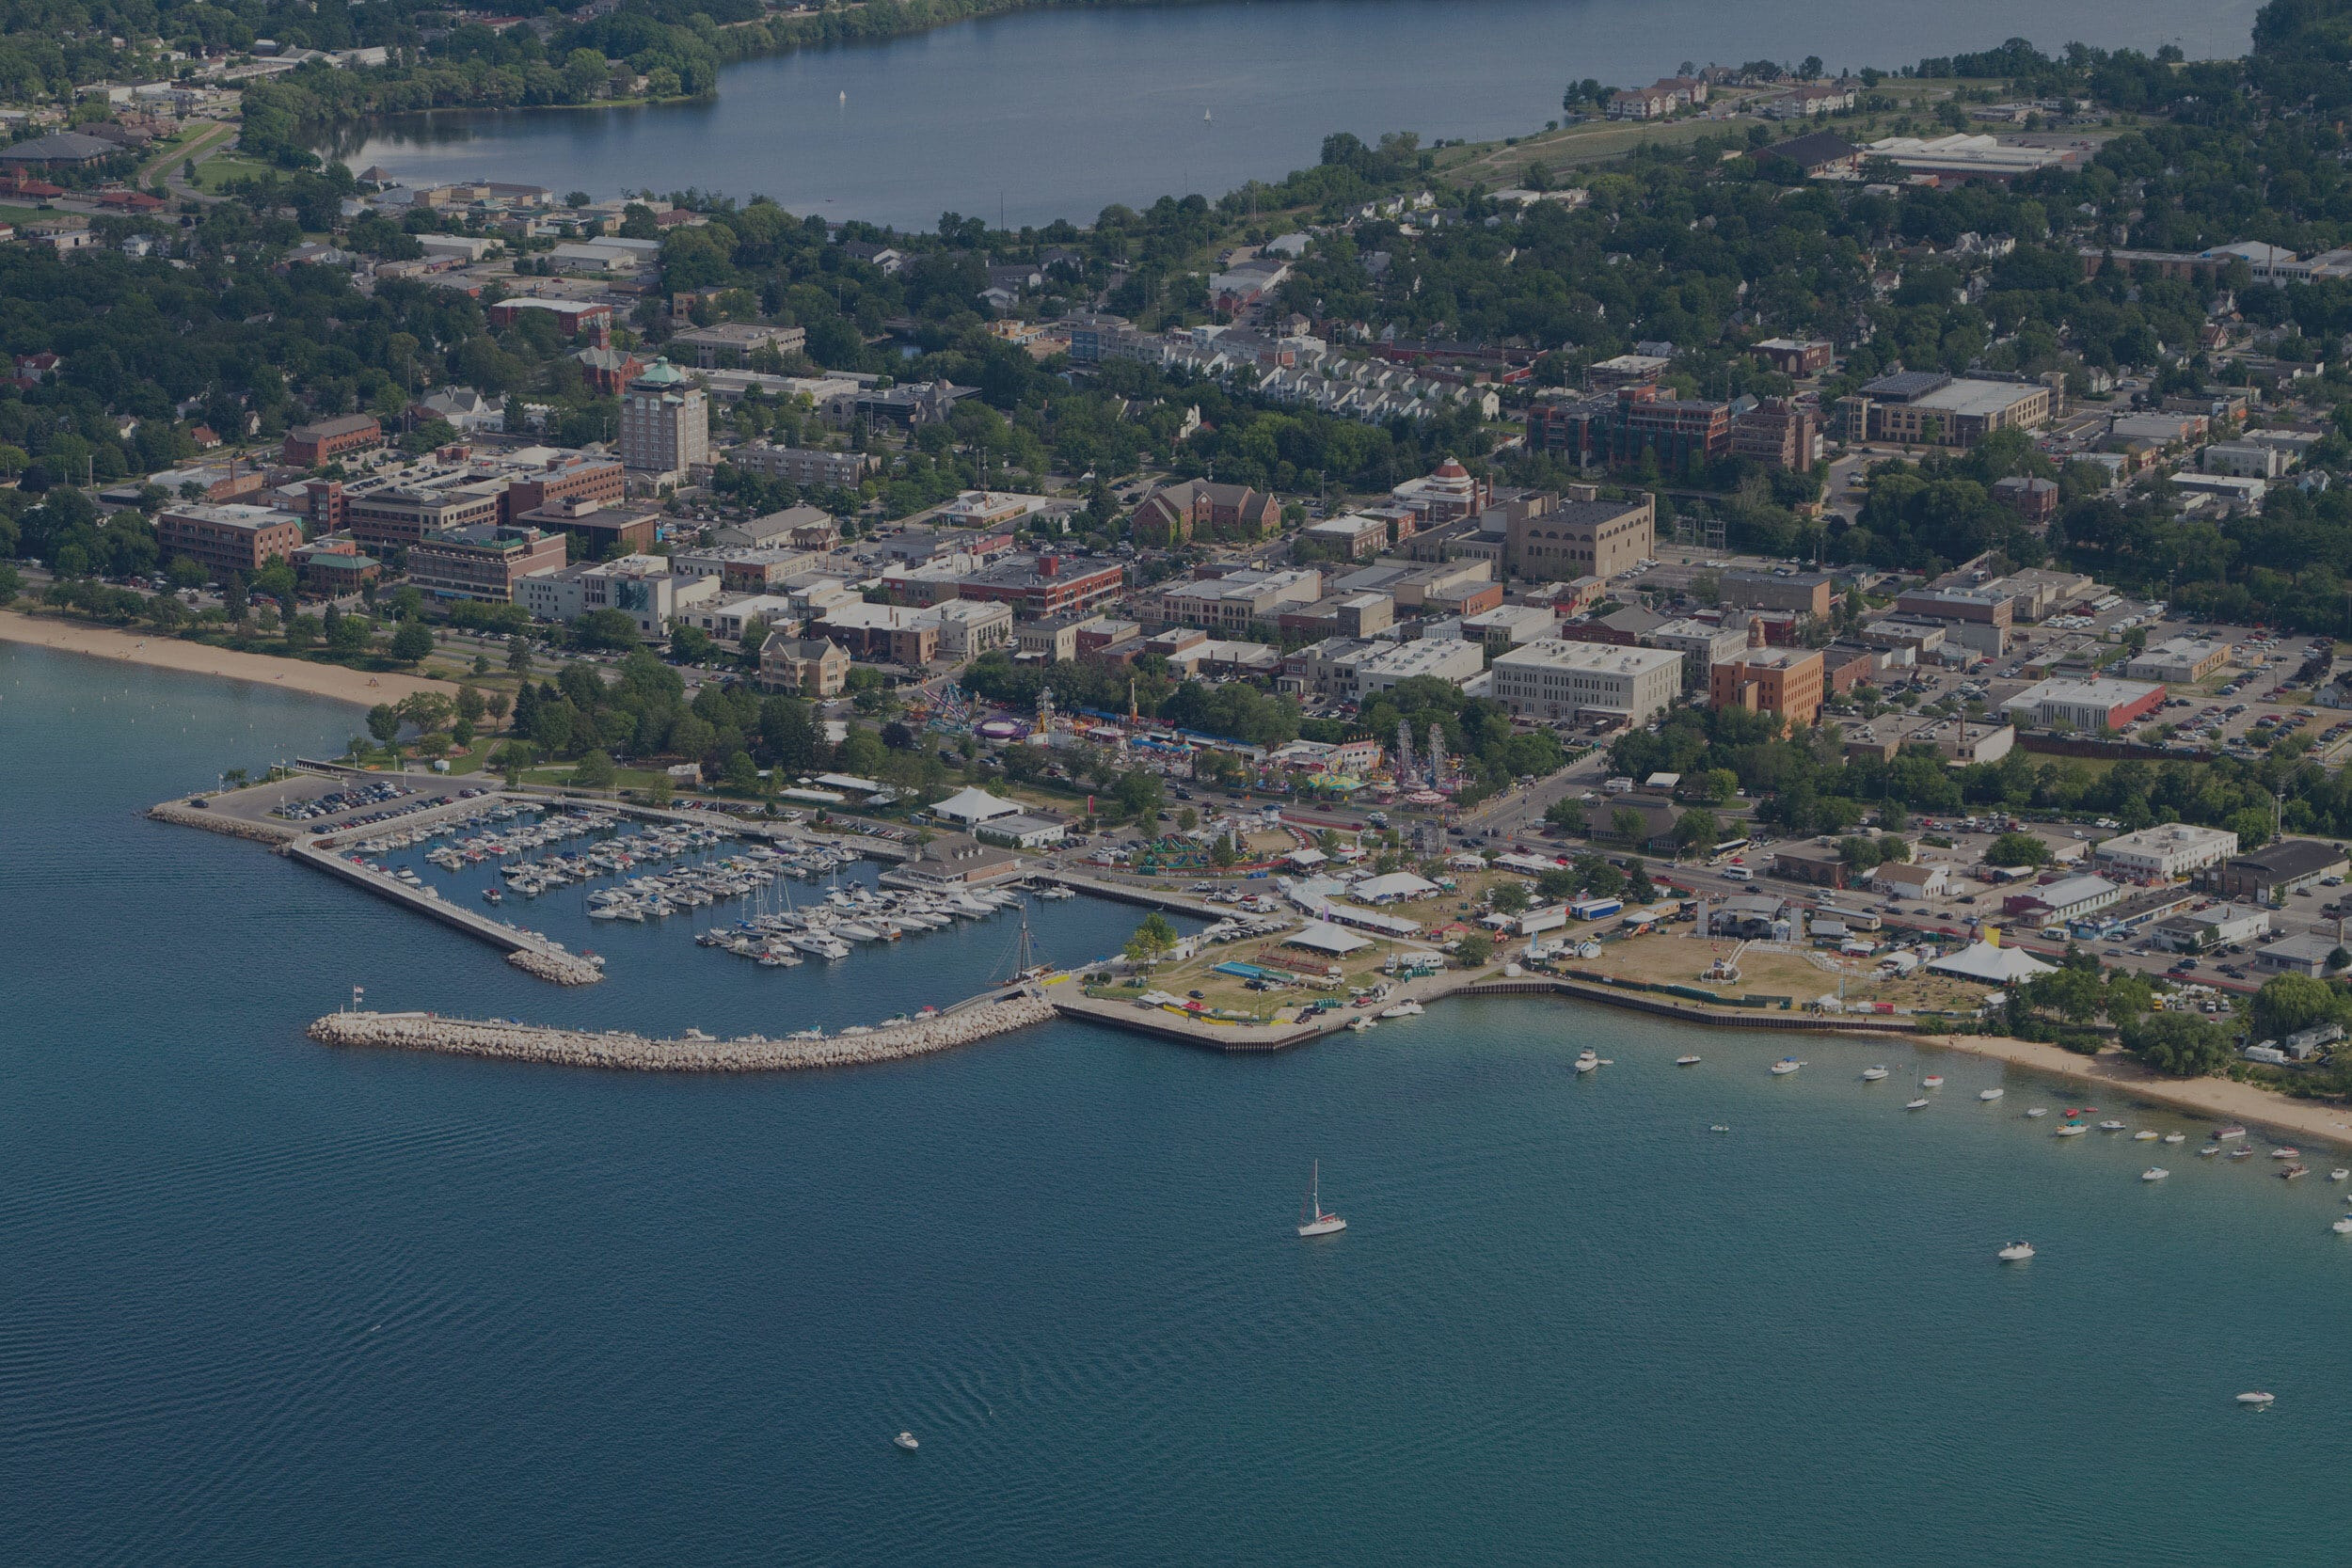 Aerial shot of Grand Traverse Bay and downtown Traverse City in the summer